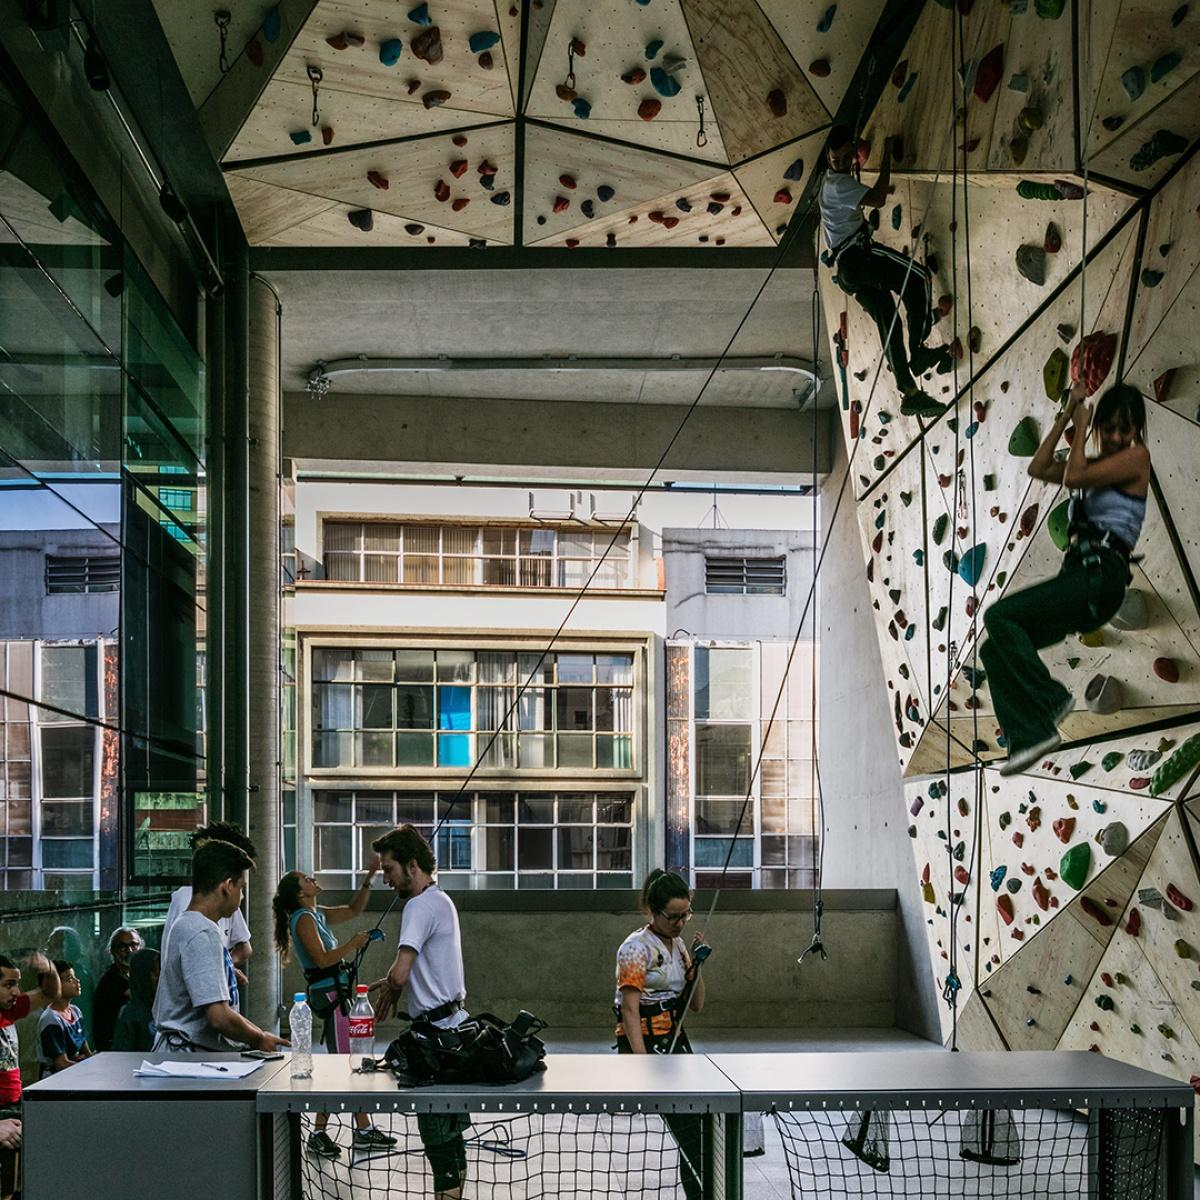 A health club and climbing wall are among the leisure facilities that have opened